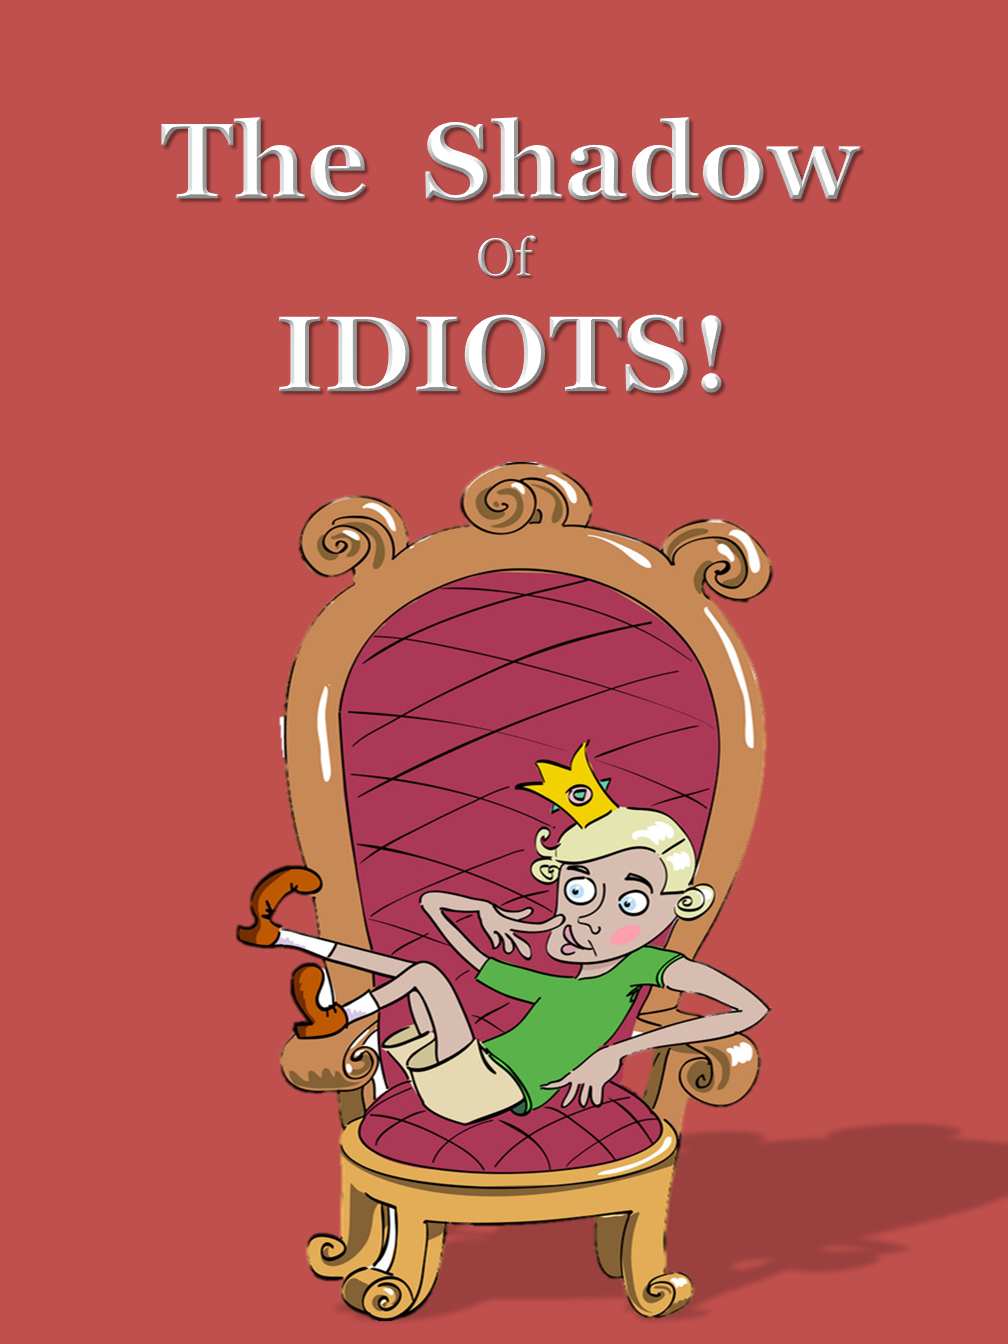 The Shadow of Idiots!